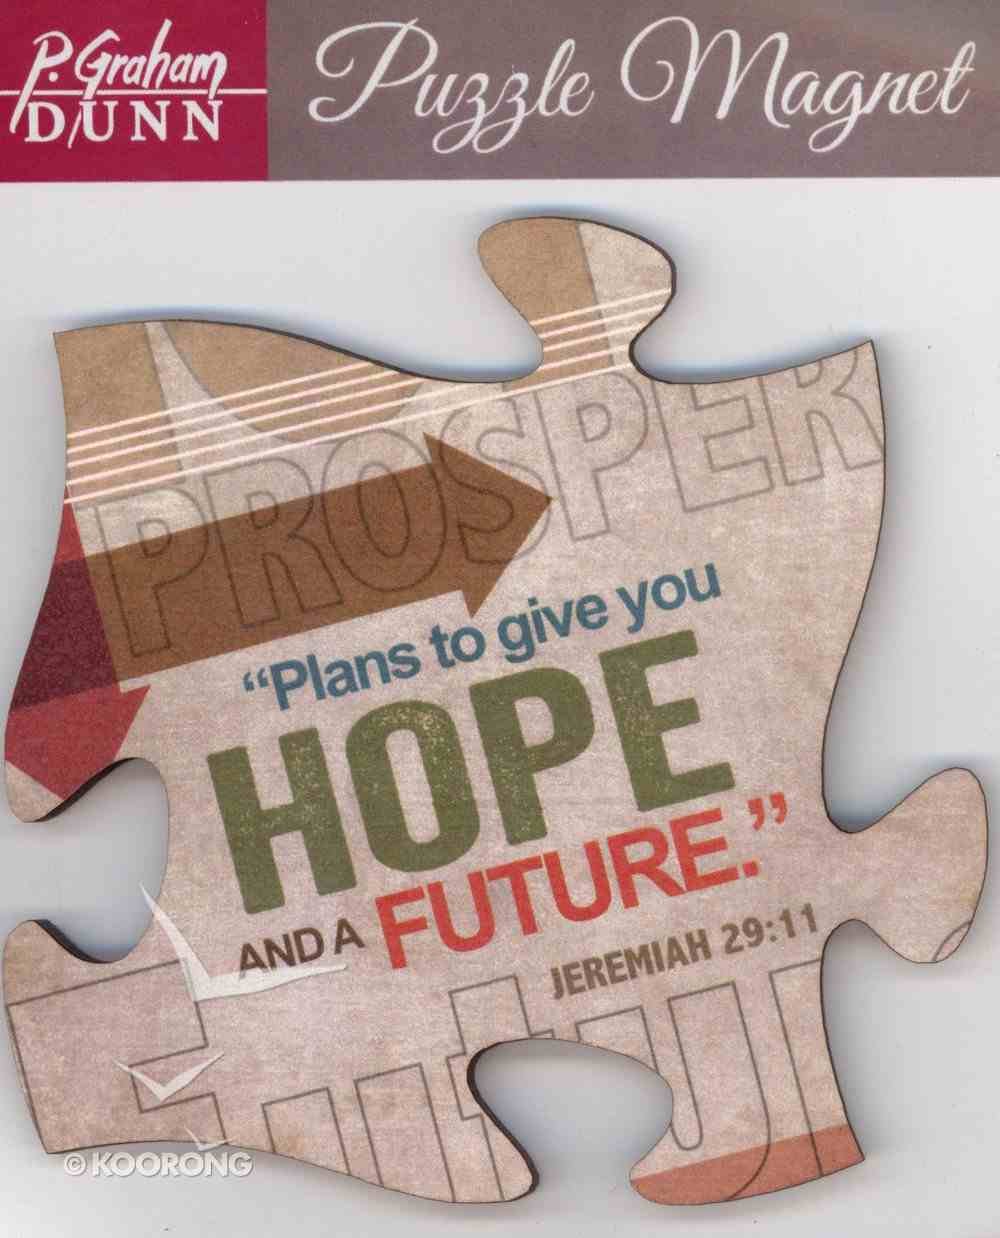 Puzzle Magnets: Plans to Give You Hope and a Future - Jeremiah 29:11 Novelty